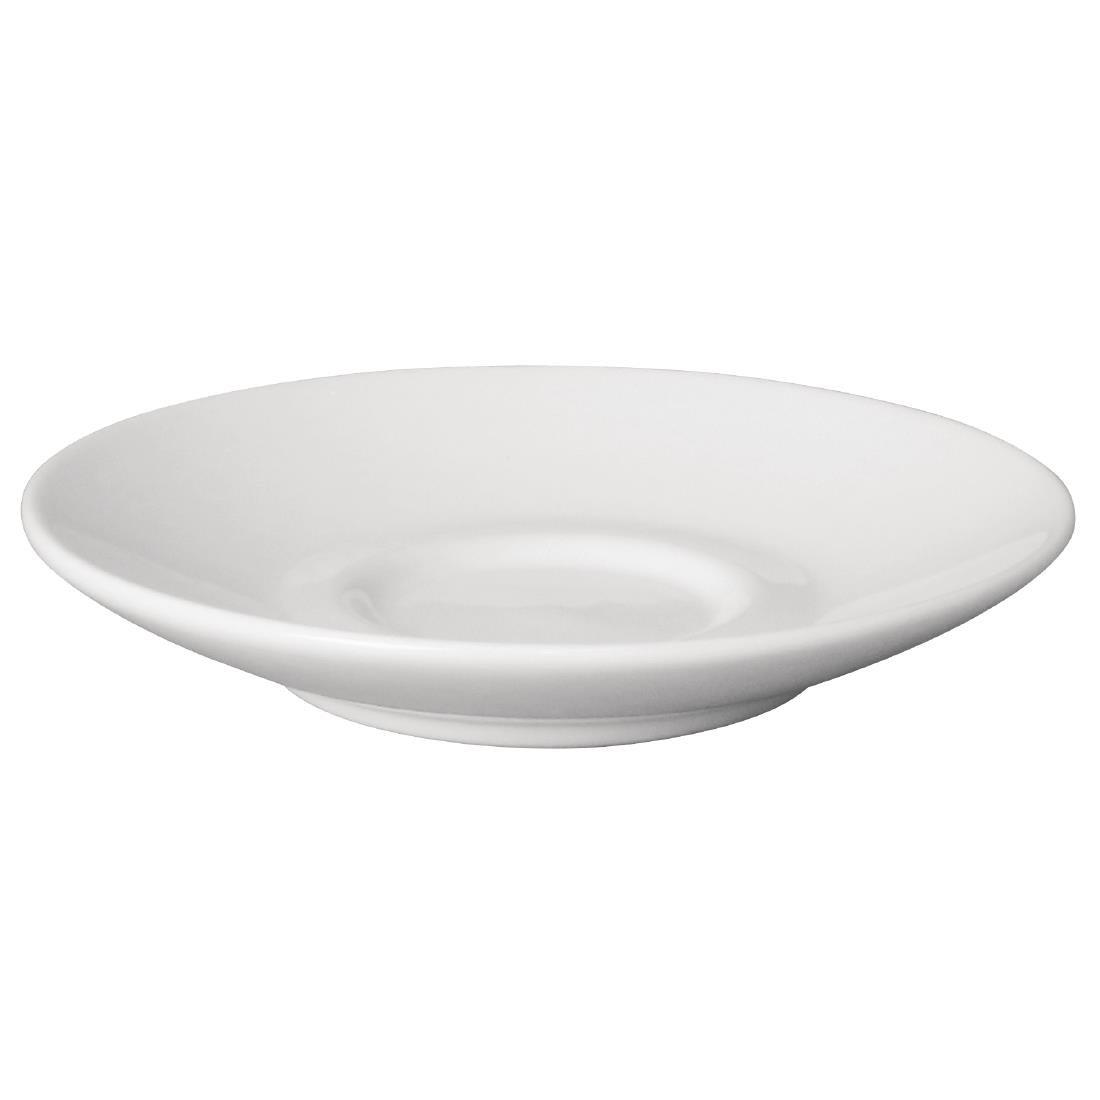 Olympia Cafe Espresso Saucers White 116.5mm